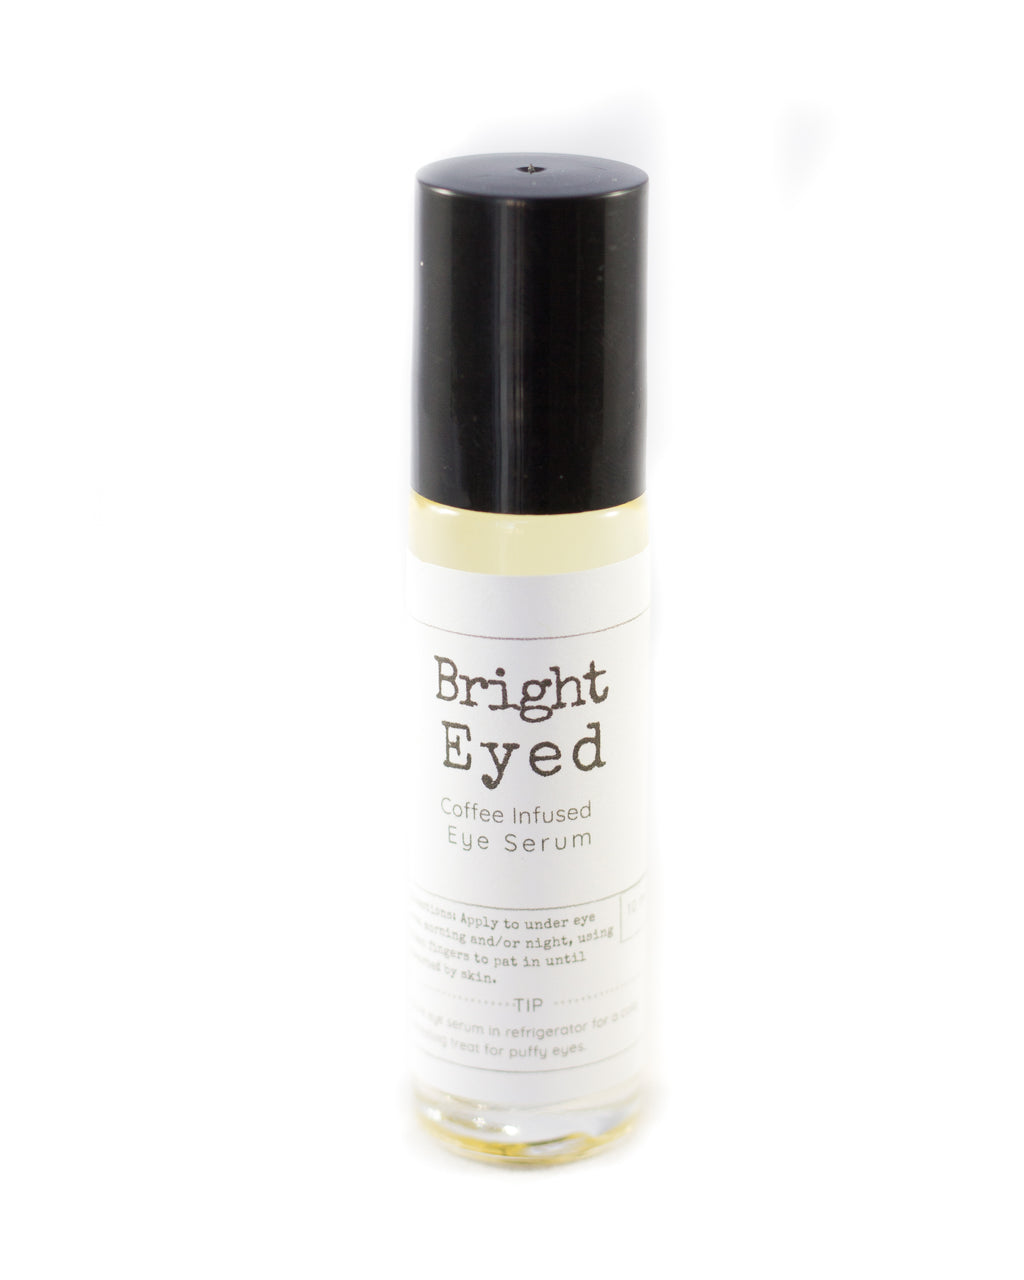 Bright Eyed Caffeine Infused Under Eye Serum Coffee Under Eye Depuffer for Puffy Eyes Fine Lines Lavender Lemon Eye Treatment Roll On Bottle